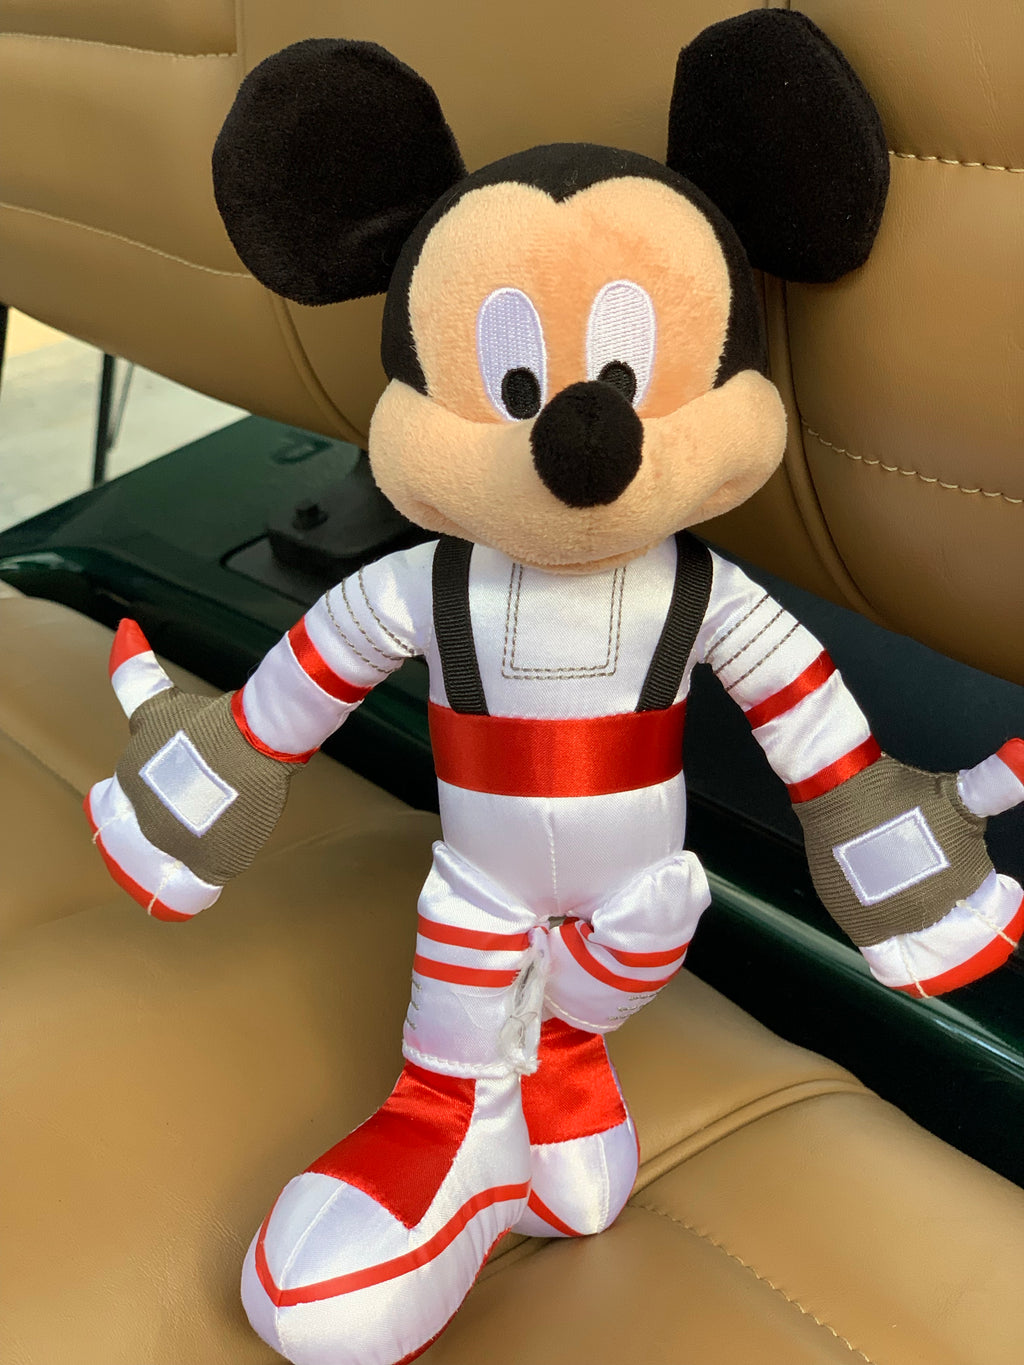 Mickey Mouse Astronaut, Disney